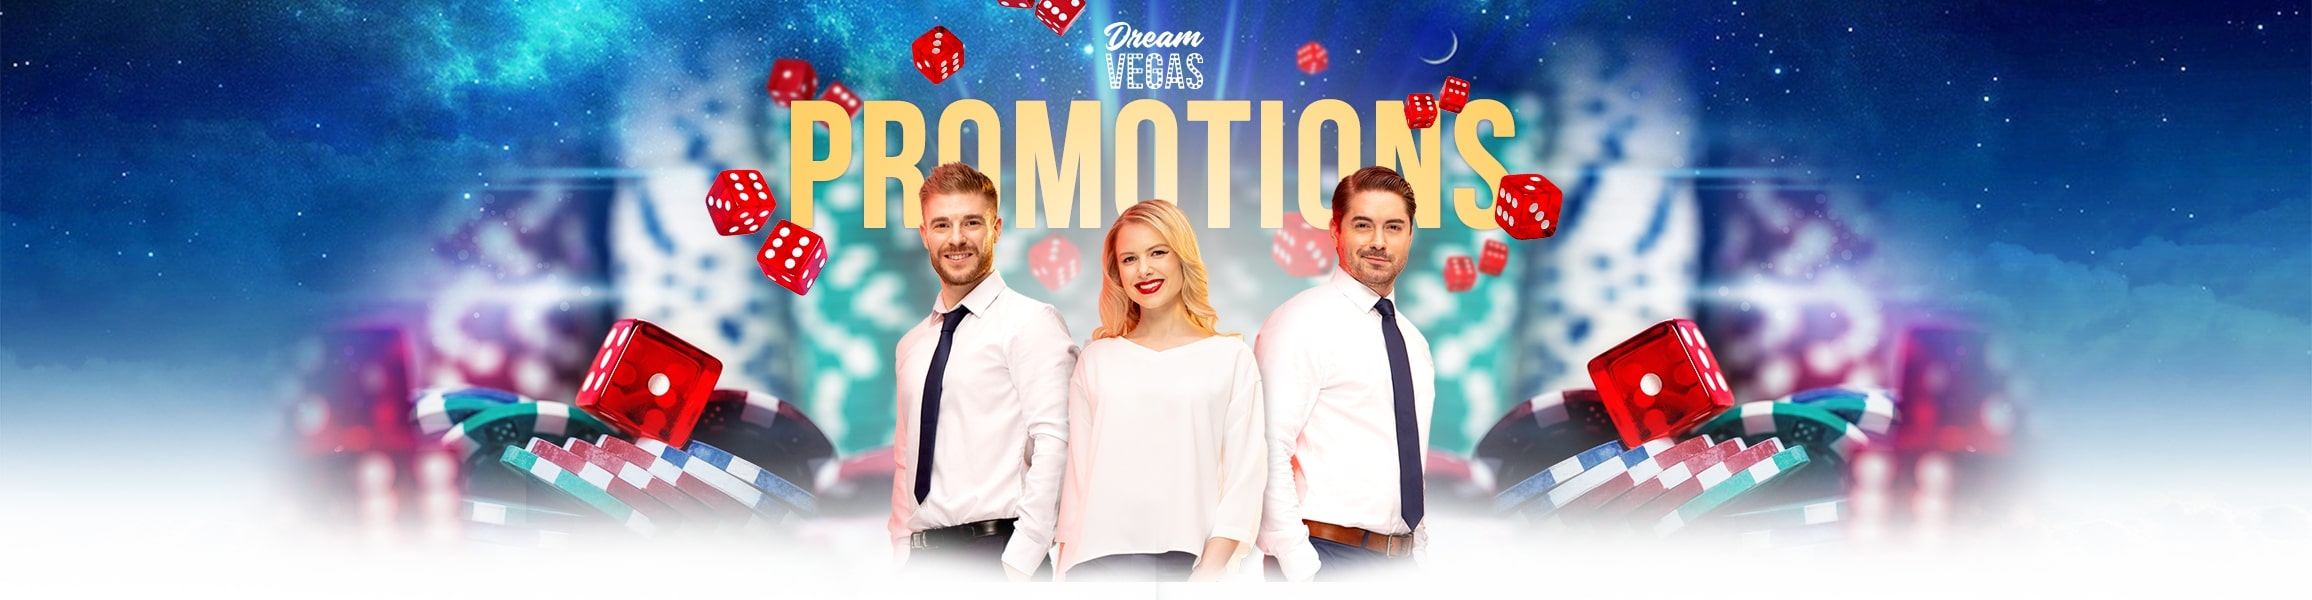 Promotions at Dream Vegas